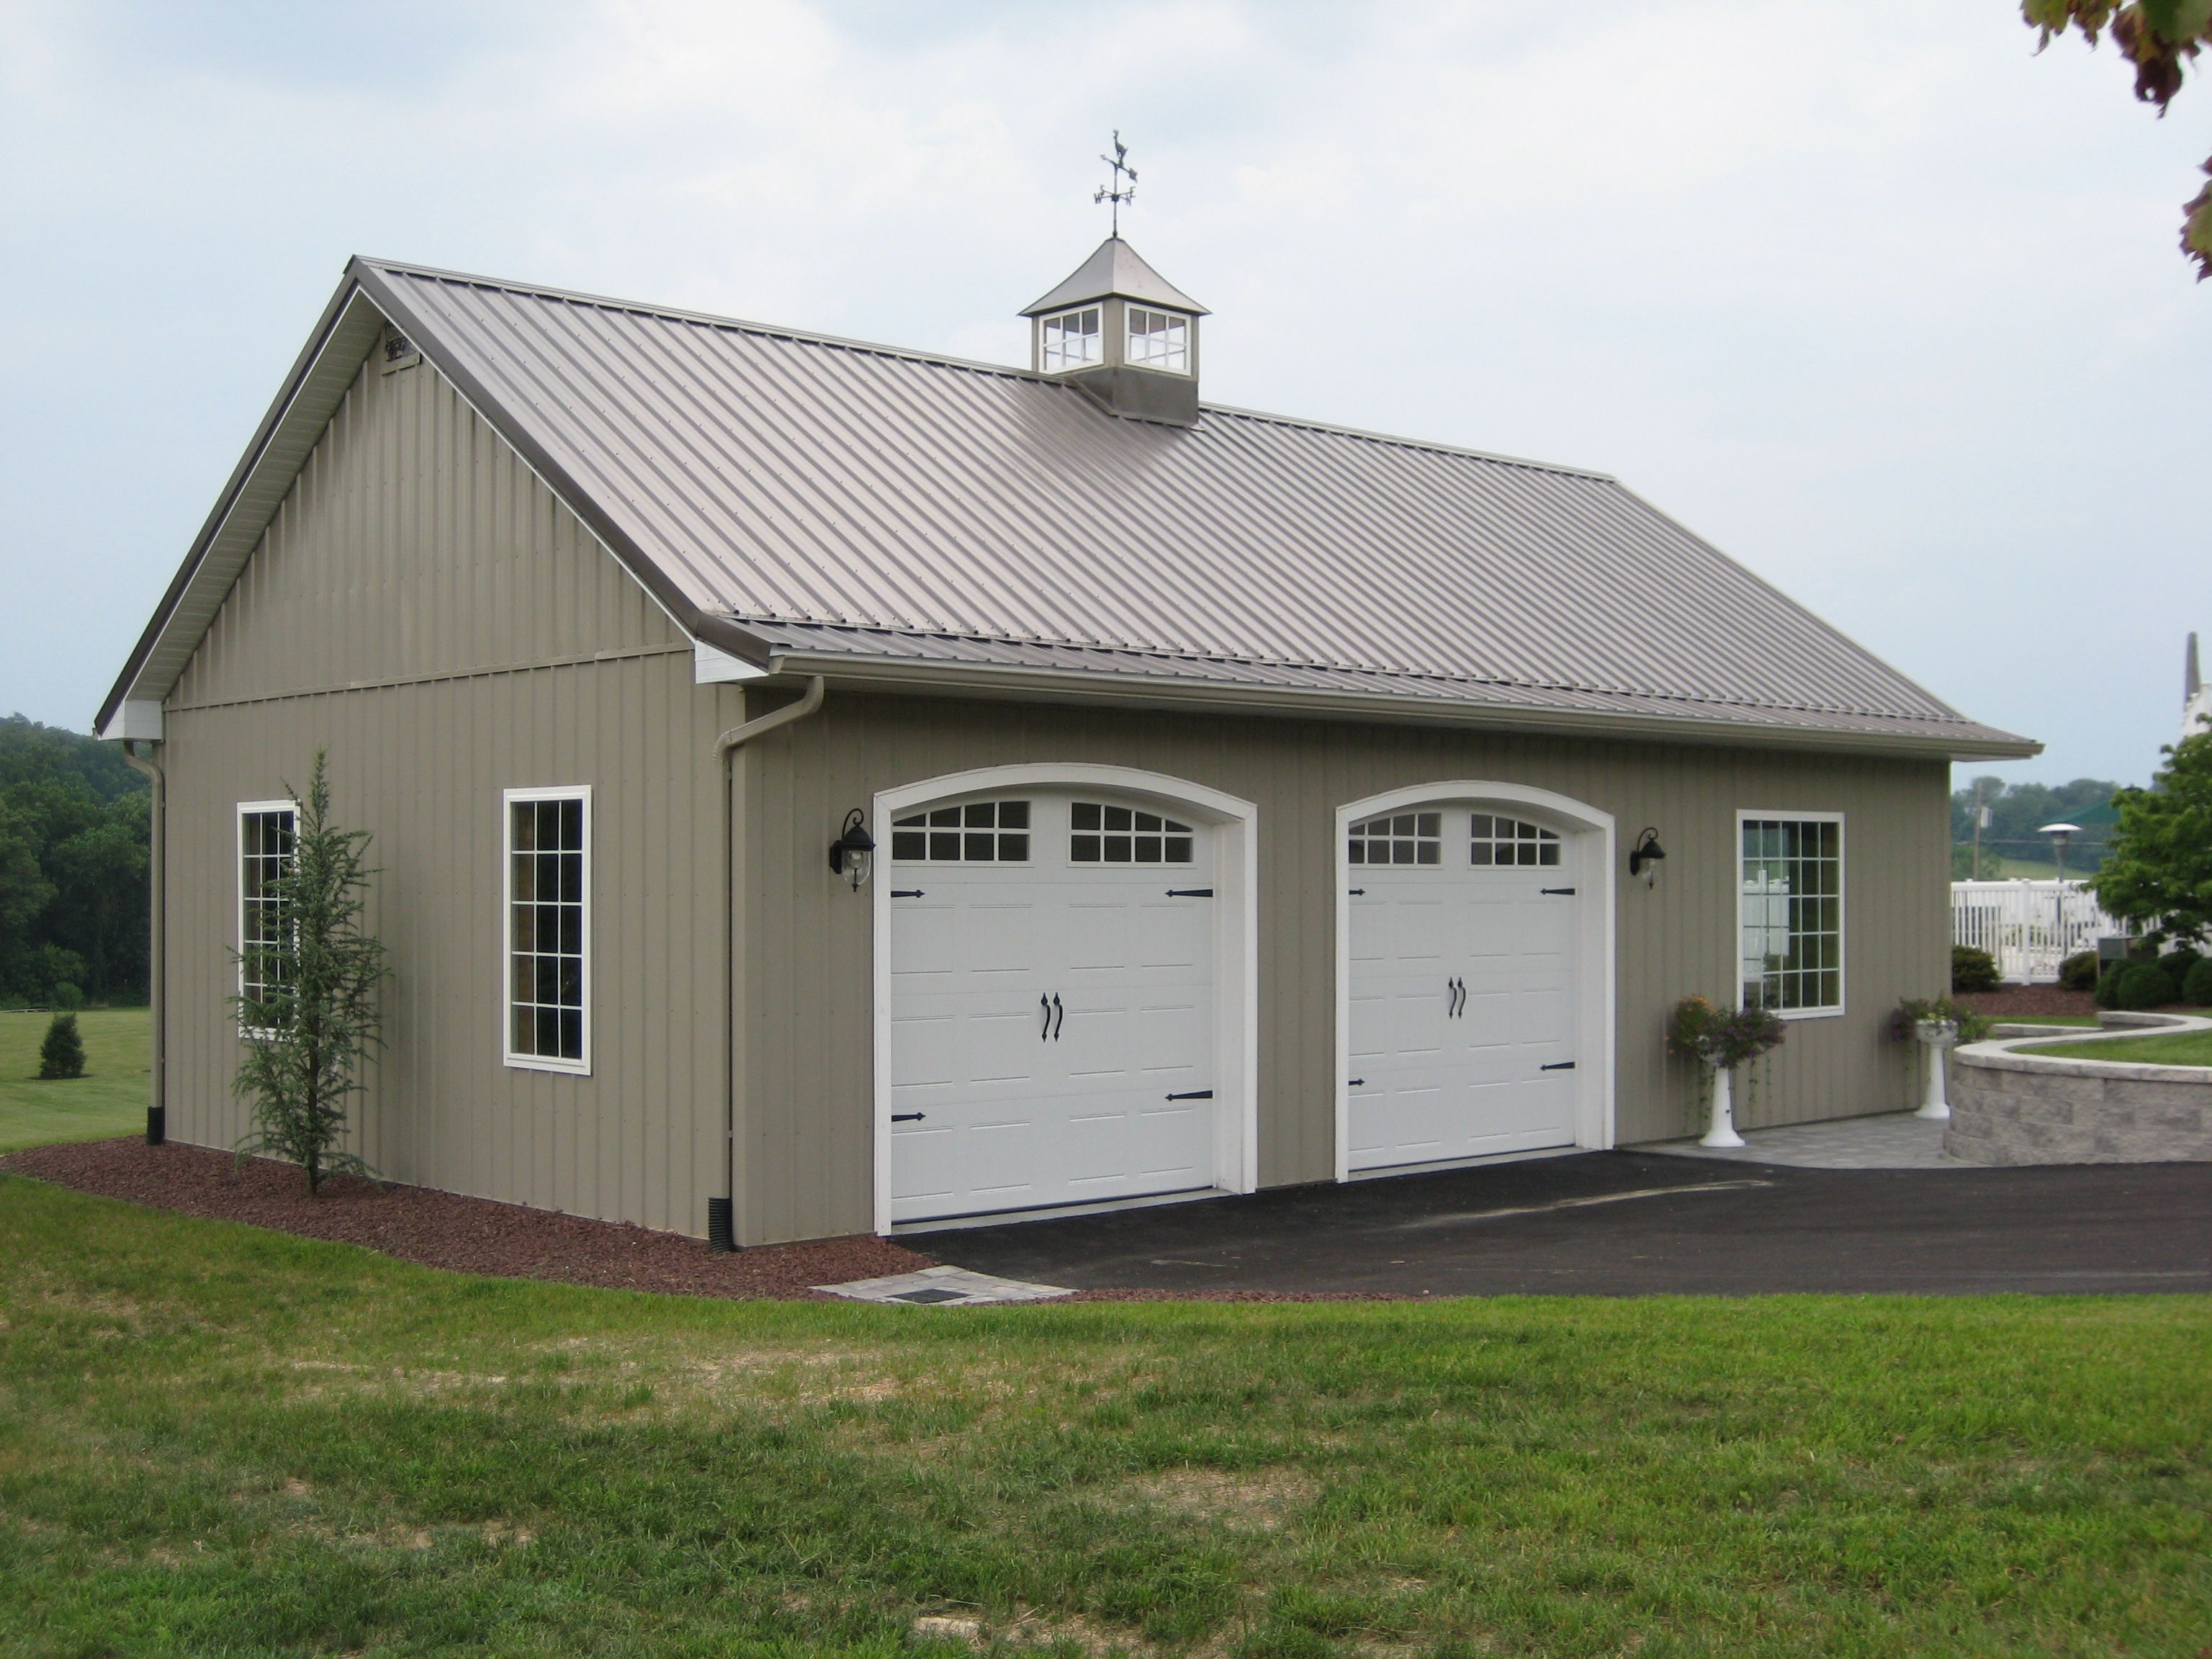 Best 25 pole barn garage ideas on pinterest pole barns for Steel garage plans